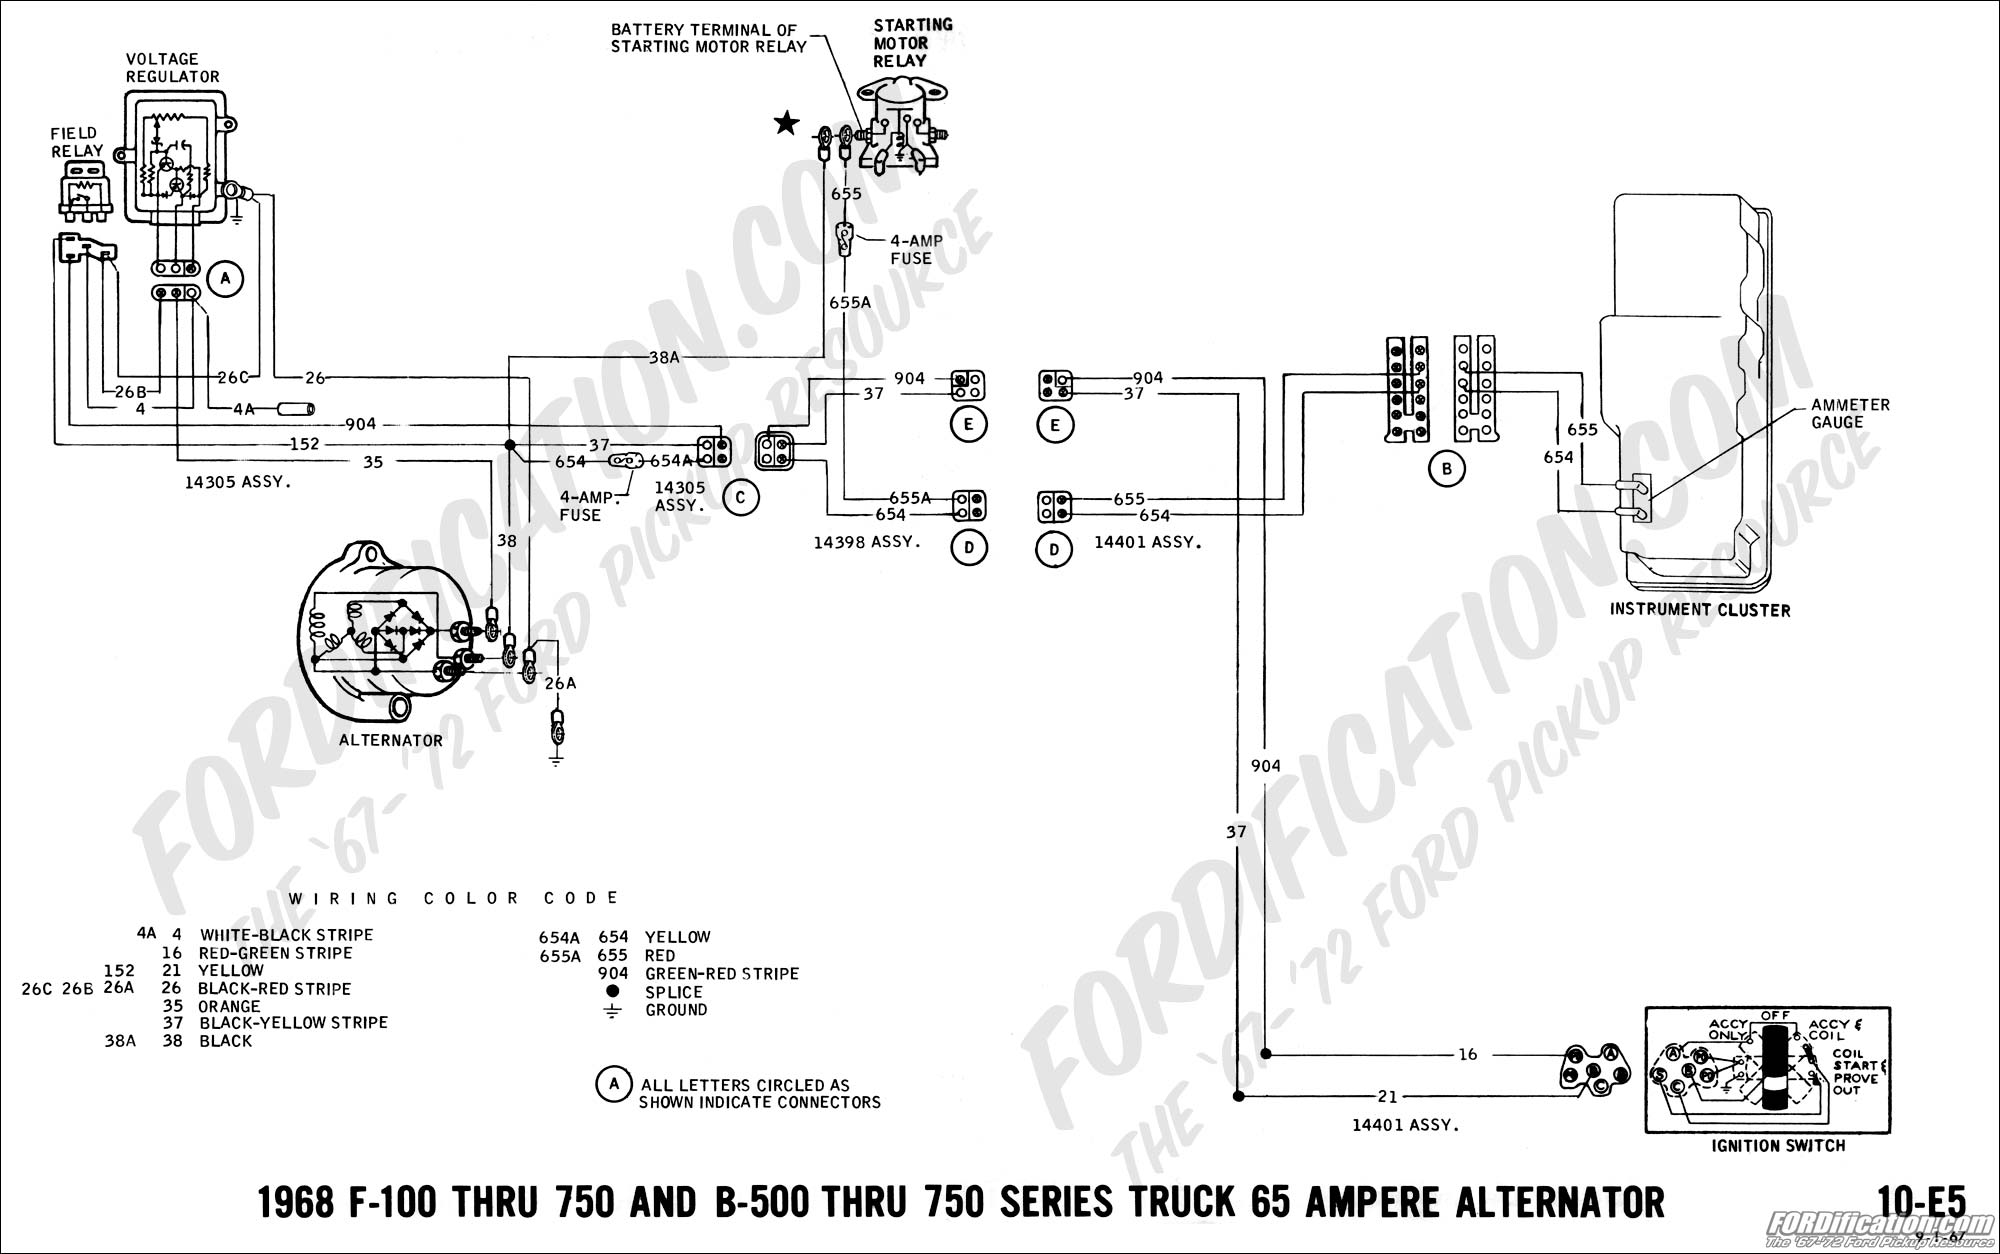 68 07 ford truck technical drawings and schematics section h wiring 1972 ford f100 wiring harness at crackthecode.co